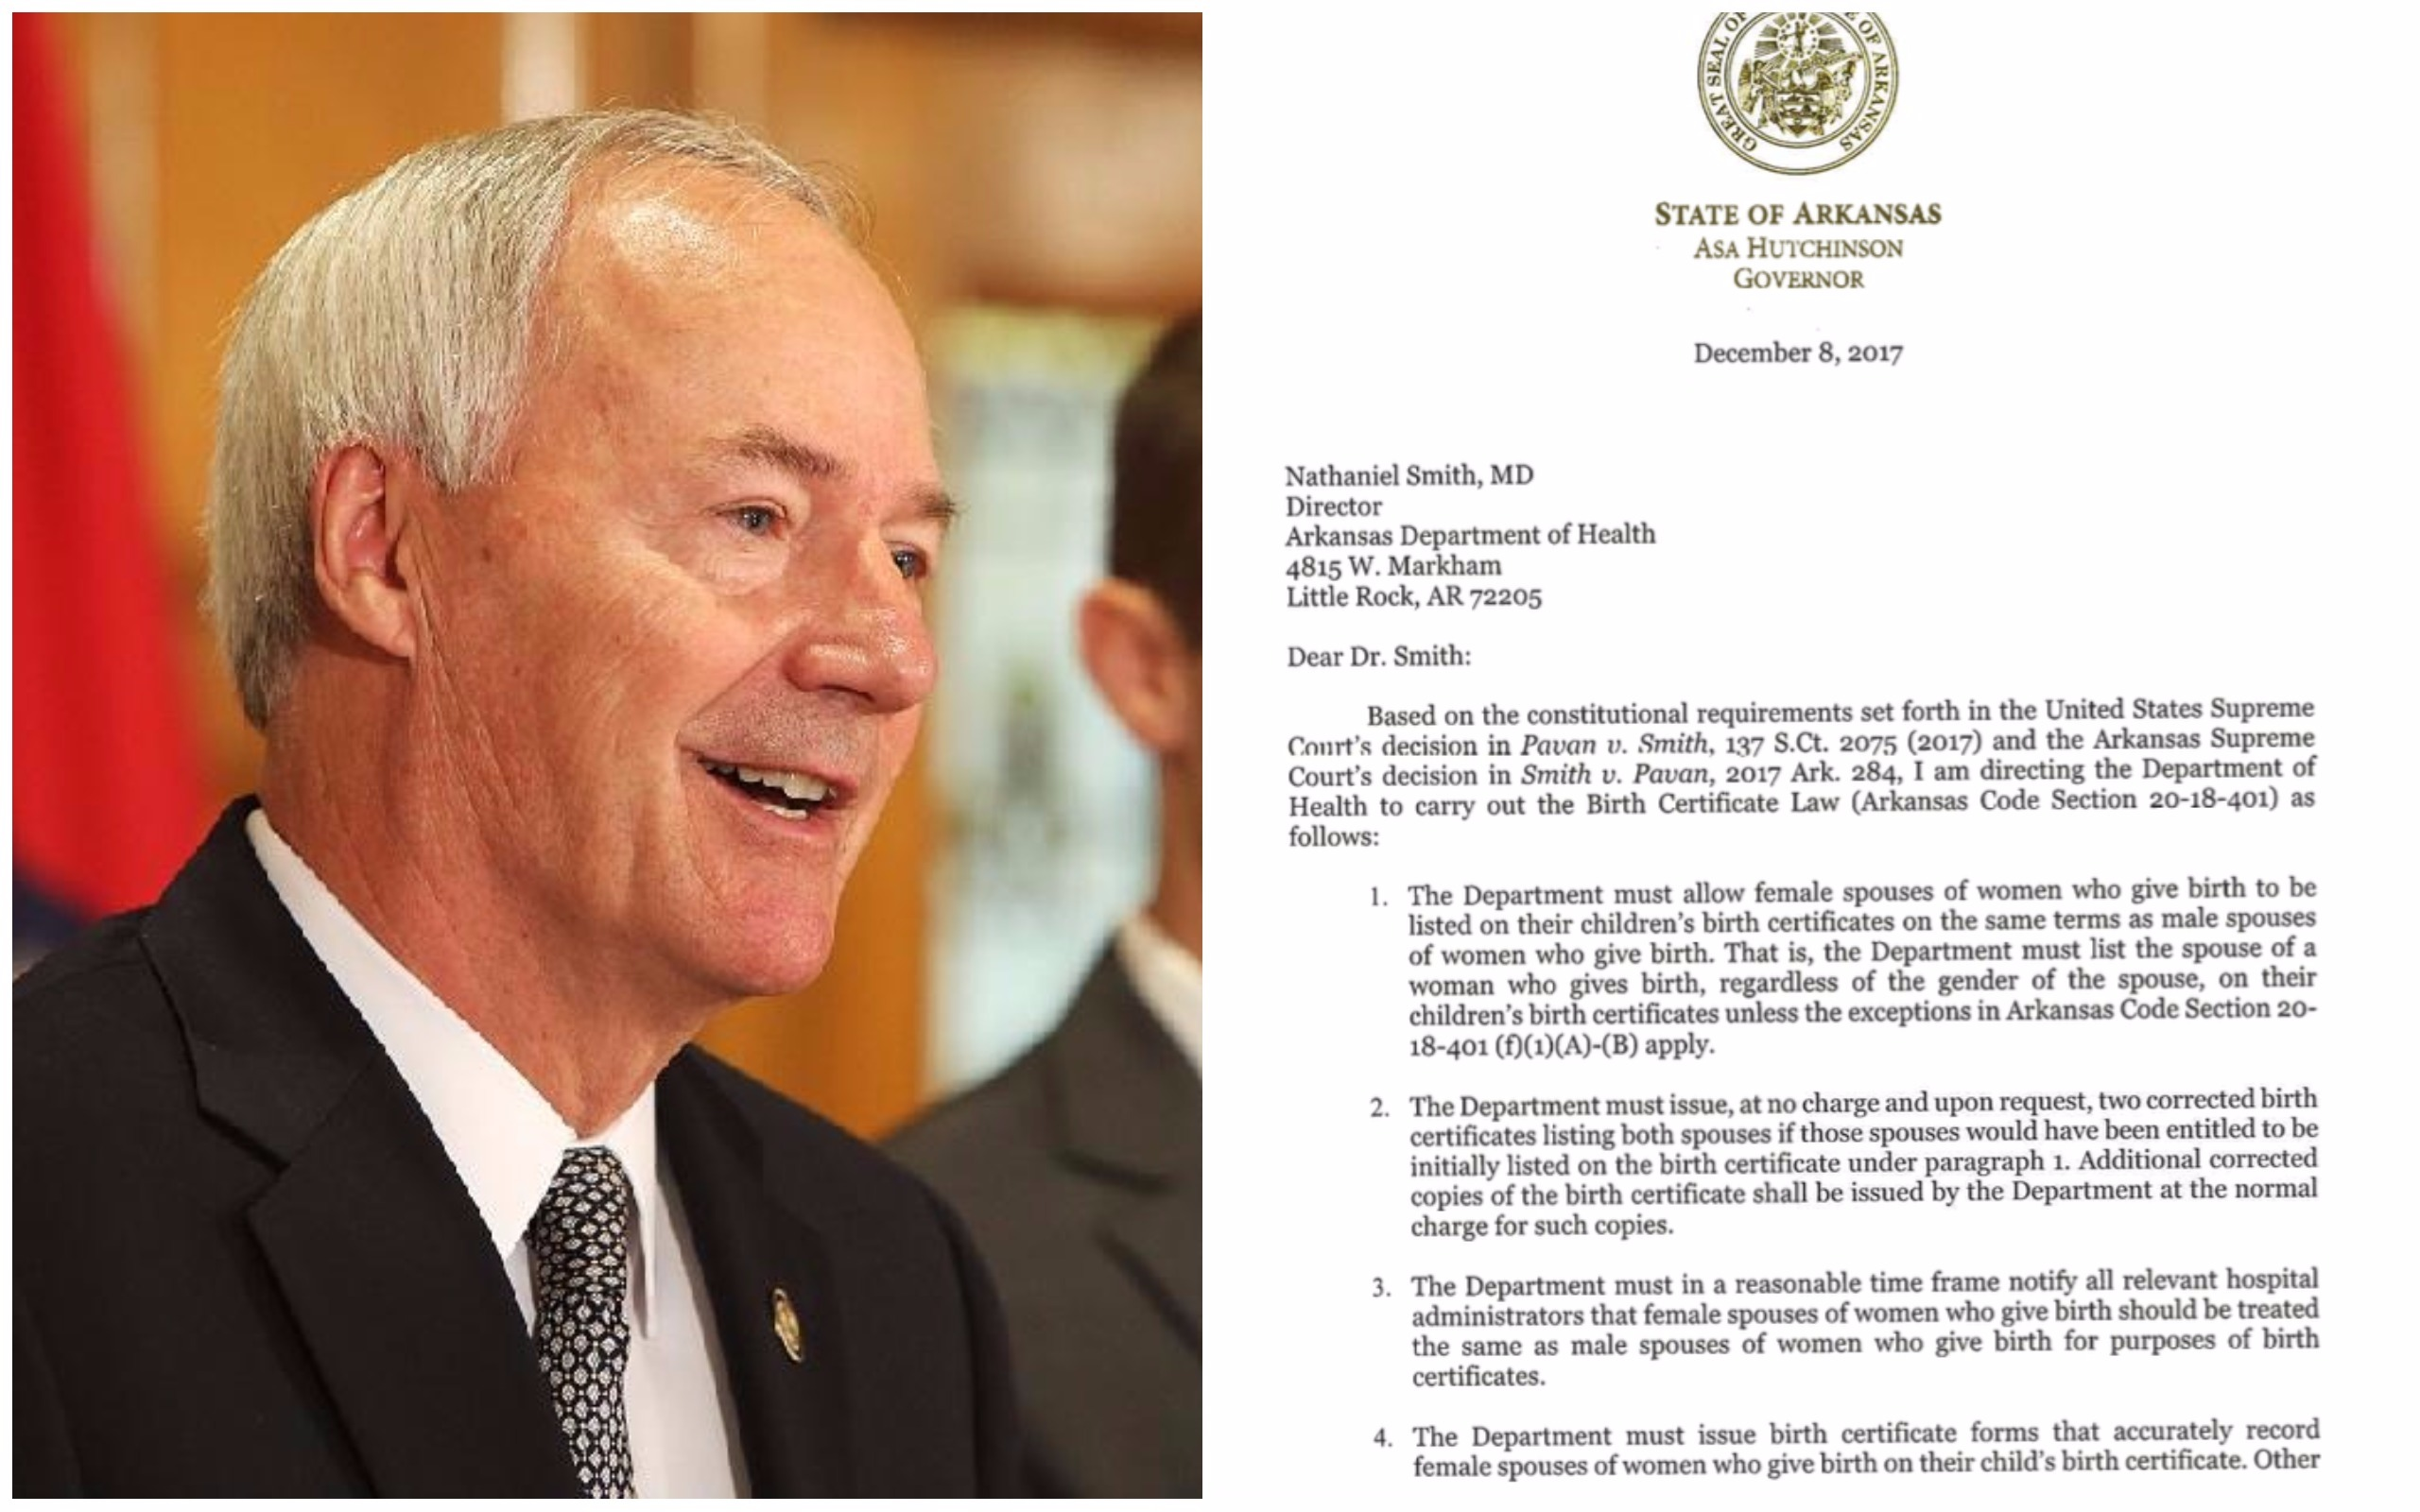 Arkansas Governor Sets Birth Certificate Changes Agency Restarts